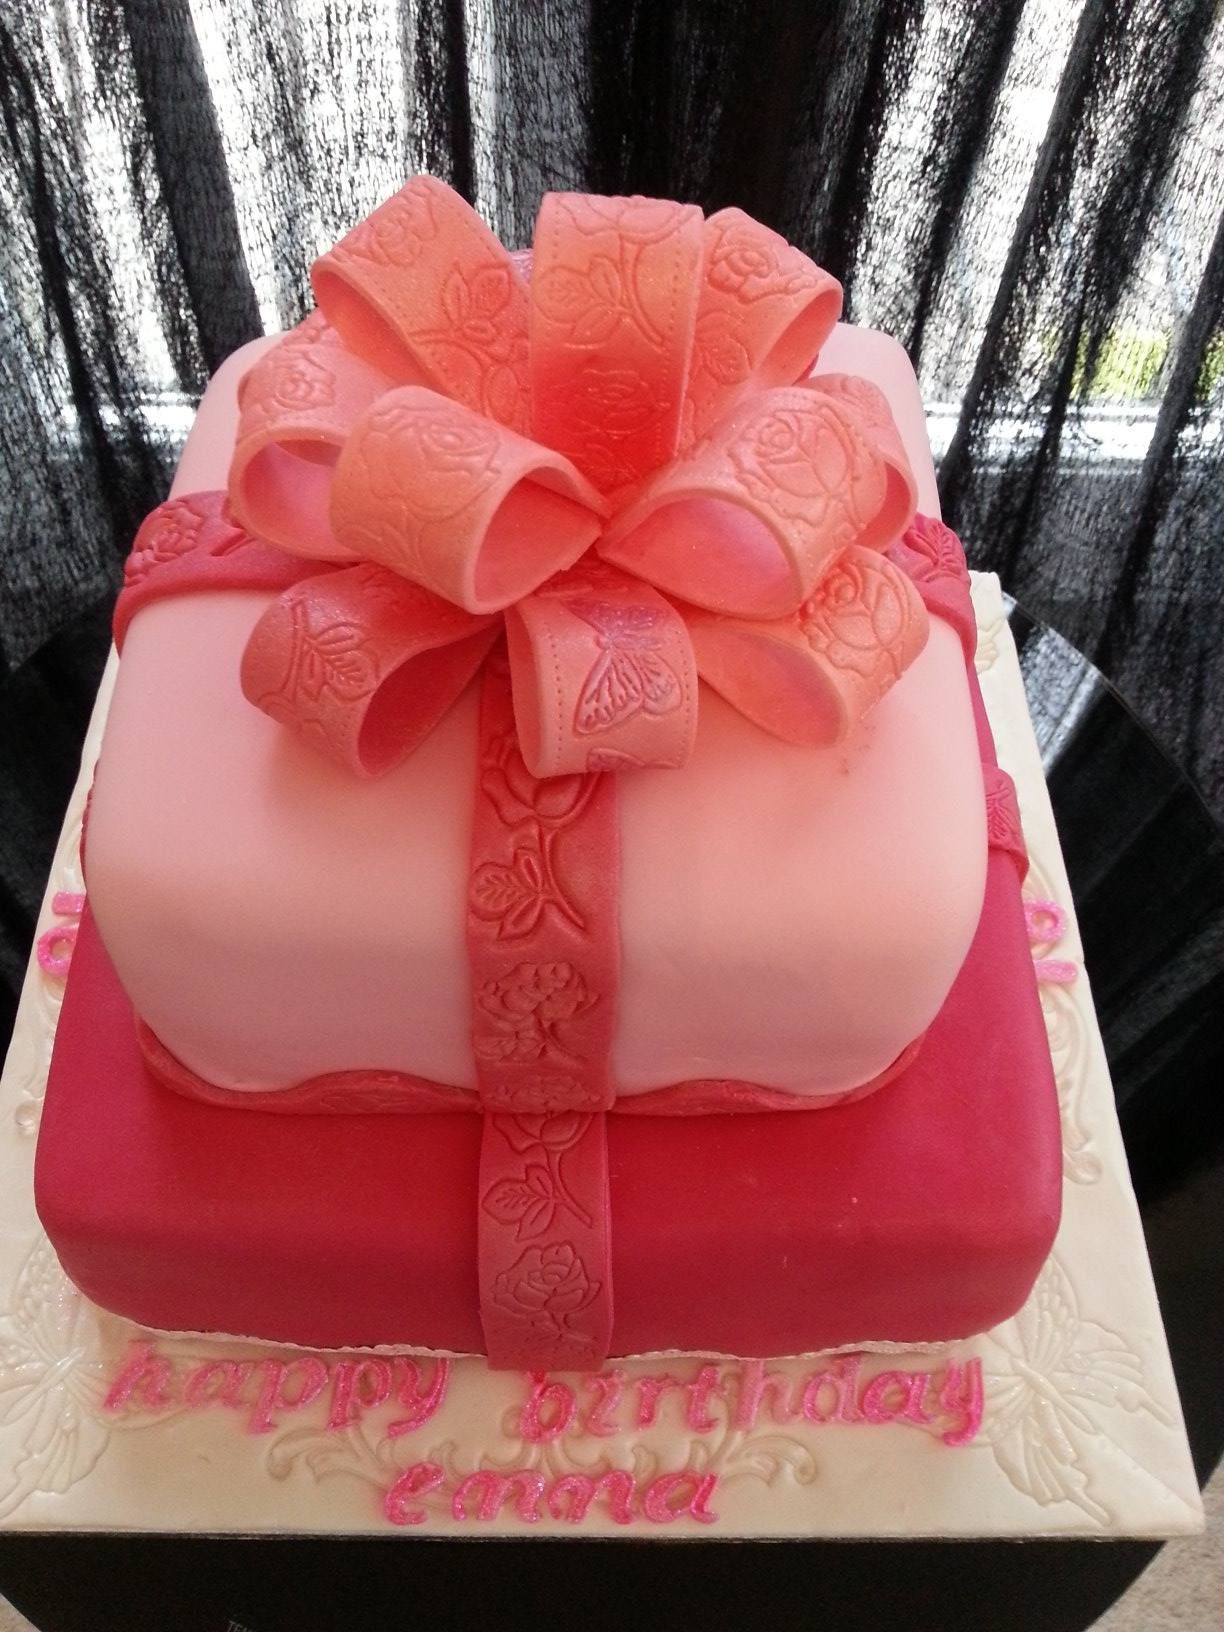 2 Tier Chocolate 18 Th Birthday Cake Httpsbirthdaysdurban